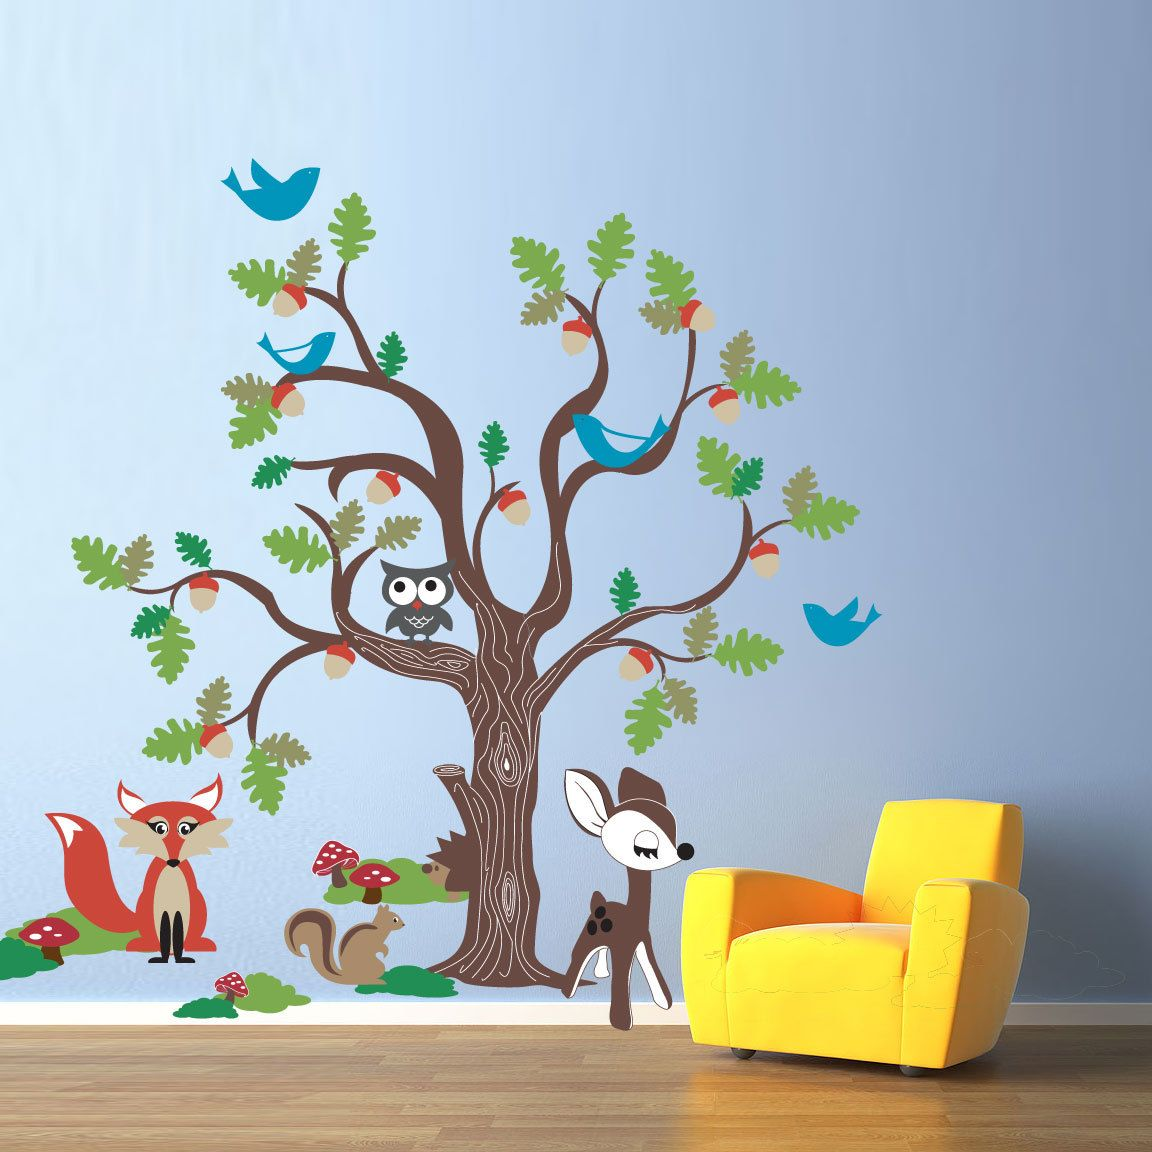 Vinyl Wall Decal Sticker Art   Oak Tree And Woodland Animals   Extra Large  Nursery Mural Part 88